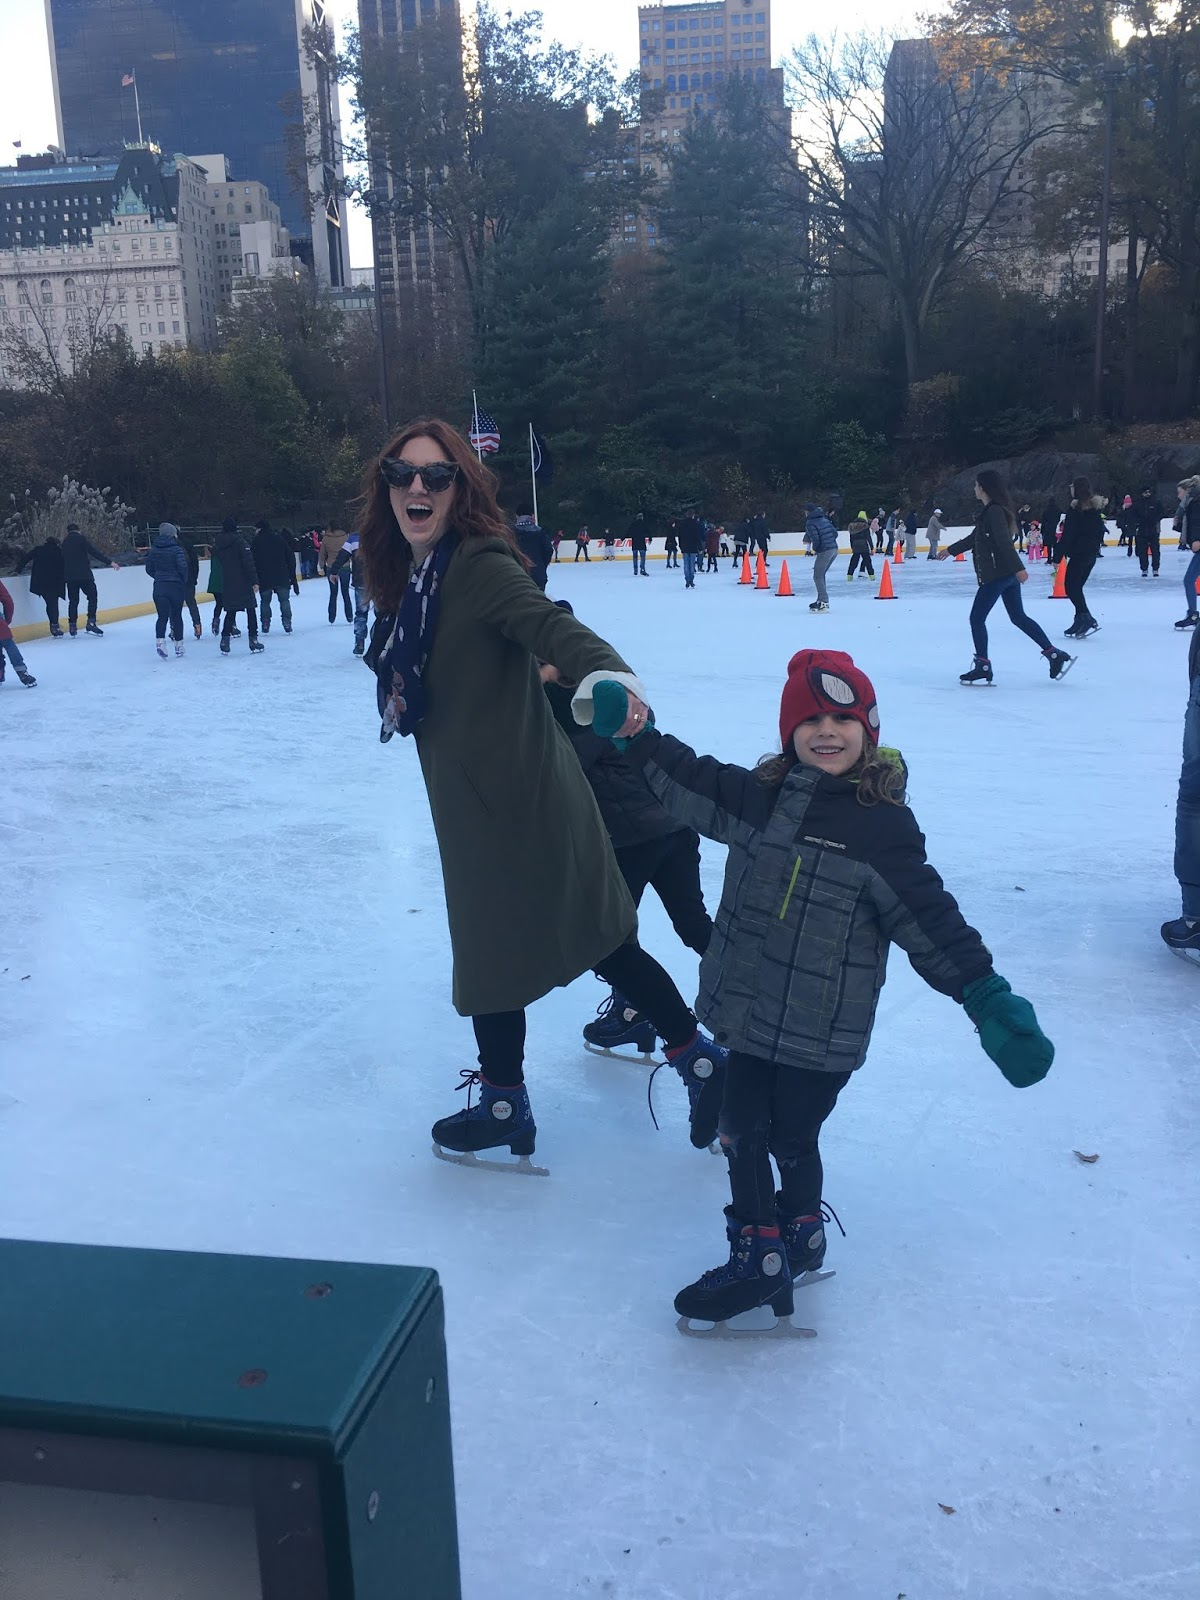 family friendly NYC, kid-friendly things to do in NYC in the winter, ice skating NYC, new York aquarium, Coney Island with kids, Central Park zoo, Brookfield Place for toddlers, what to do in NYC with your family, winter time activities for NYC, wollman rink NYC skating with kids